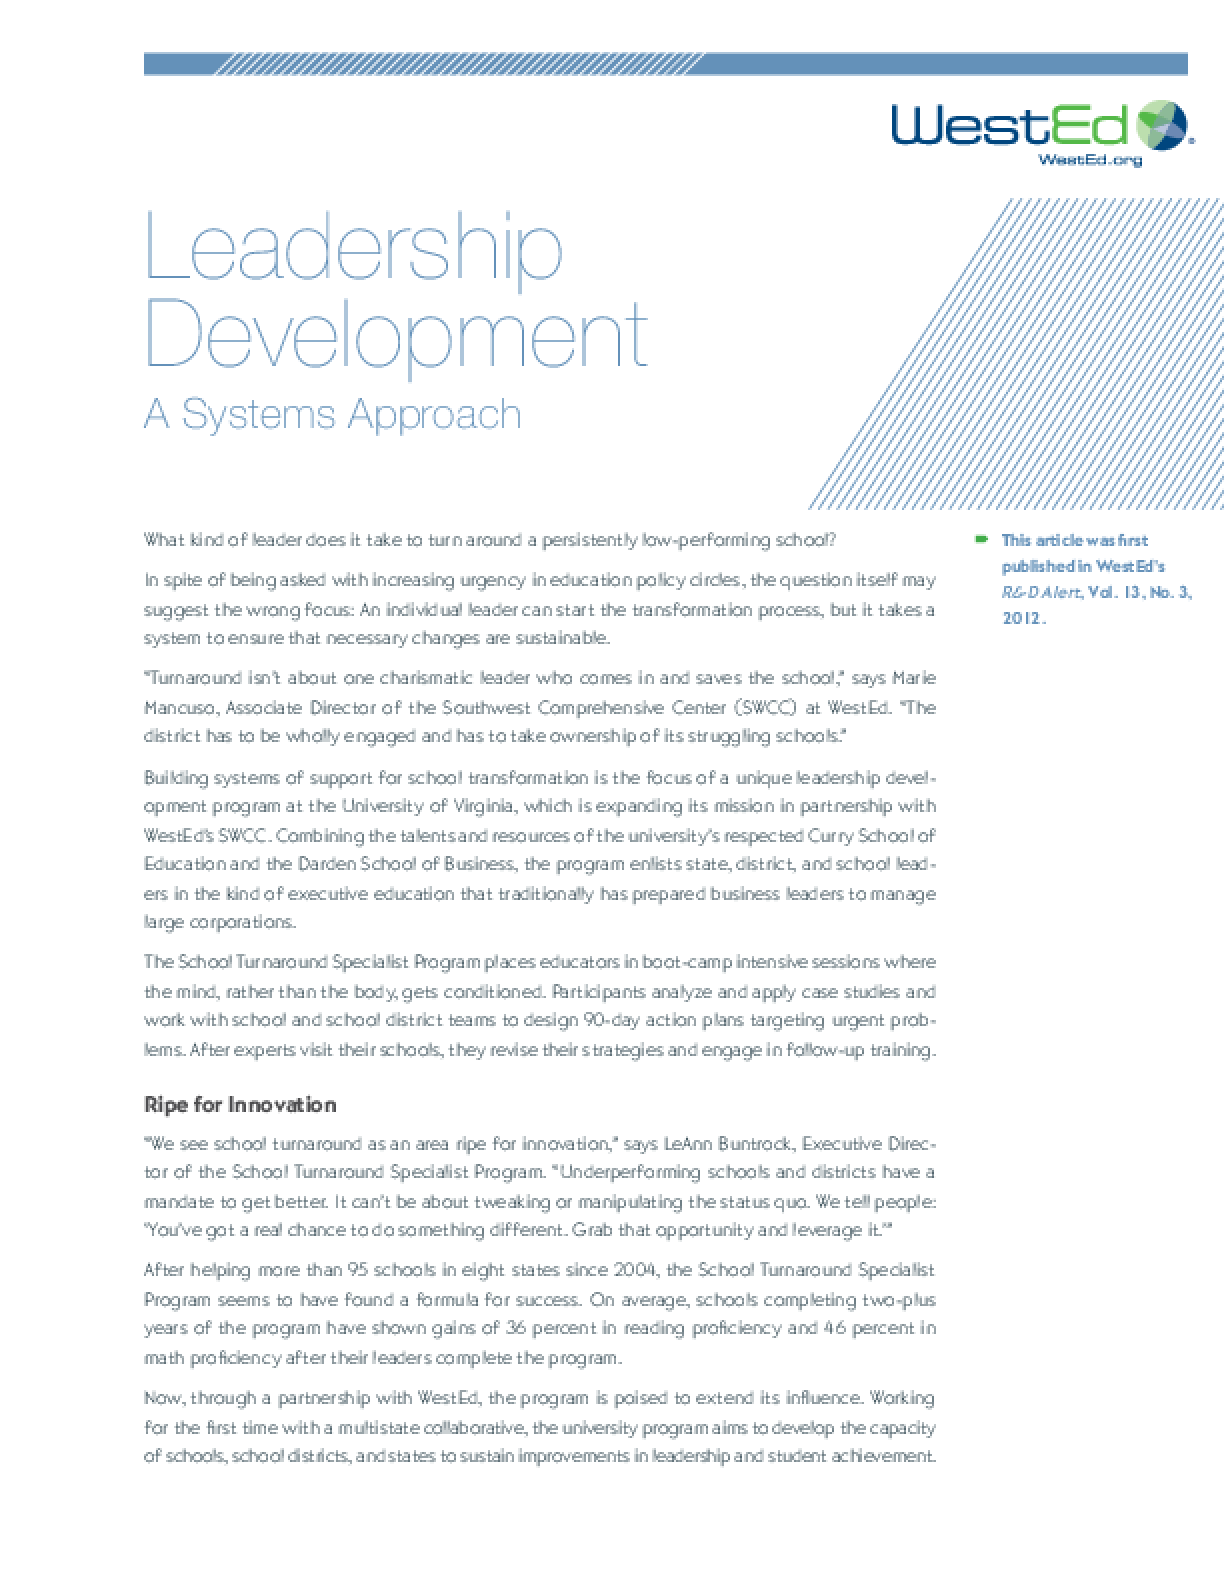 Leadership Development: A Systems Approach - IssueLab